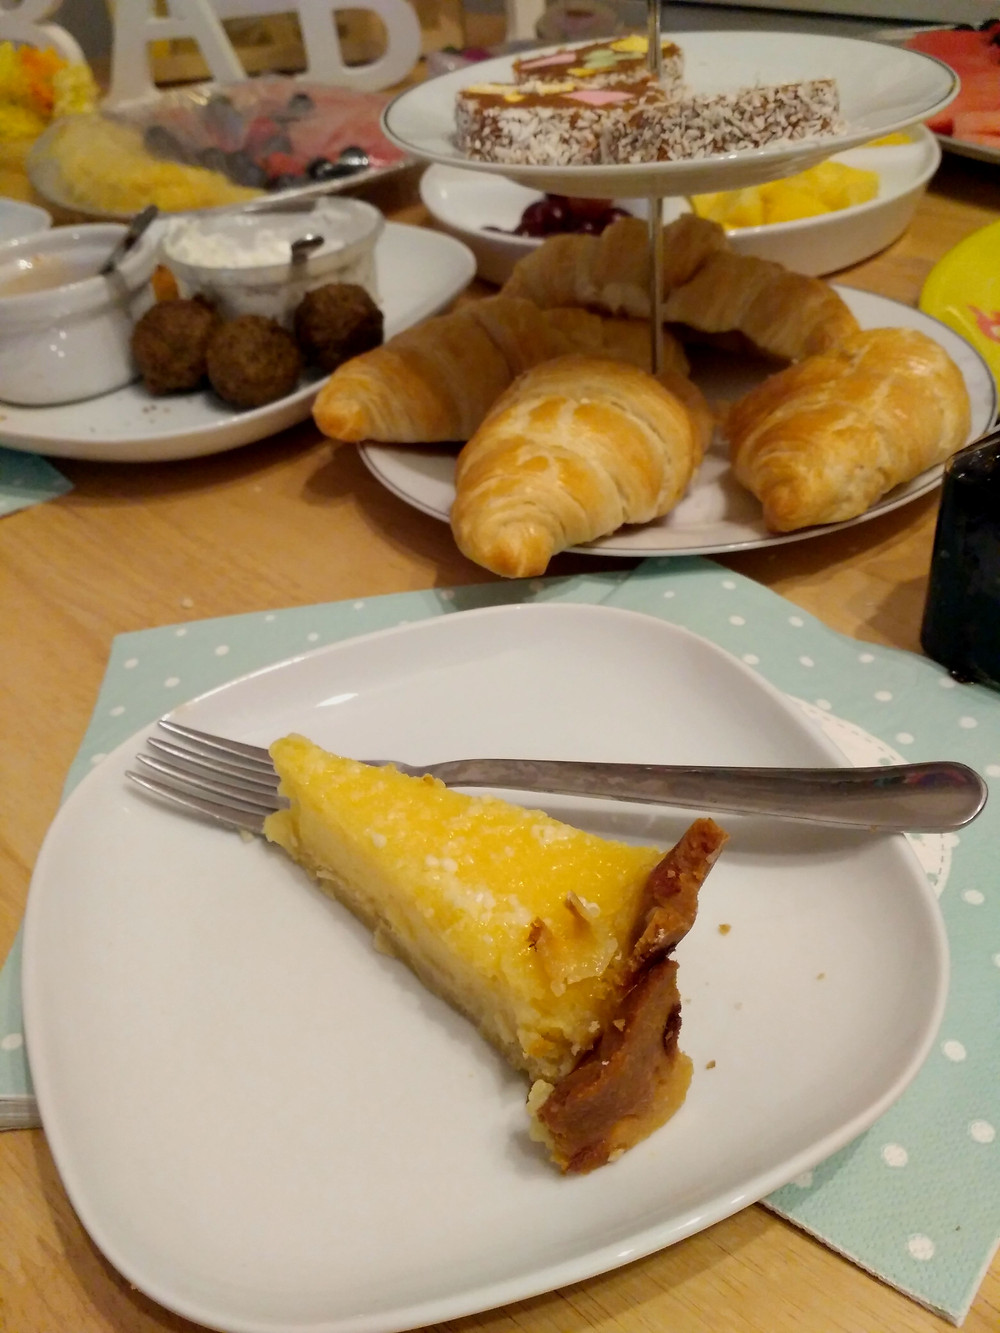 Picture showing a slice of lemon tart